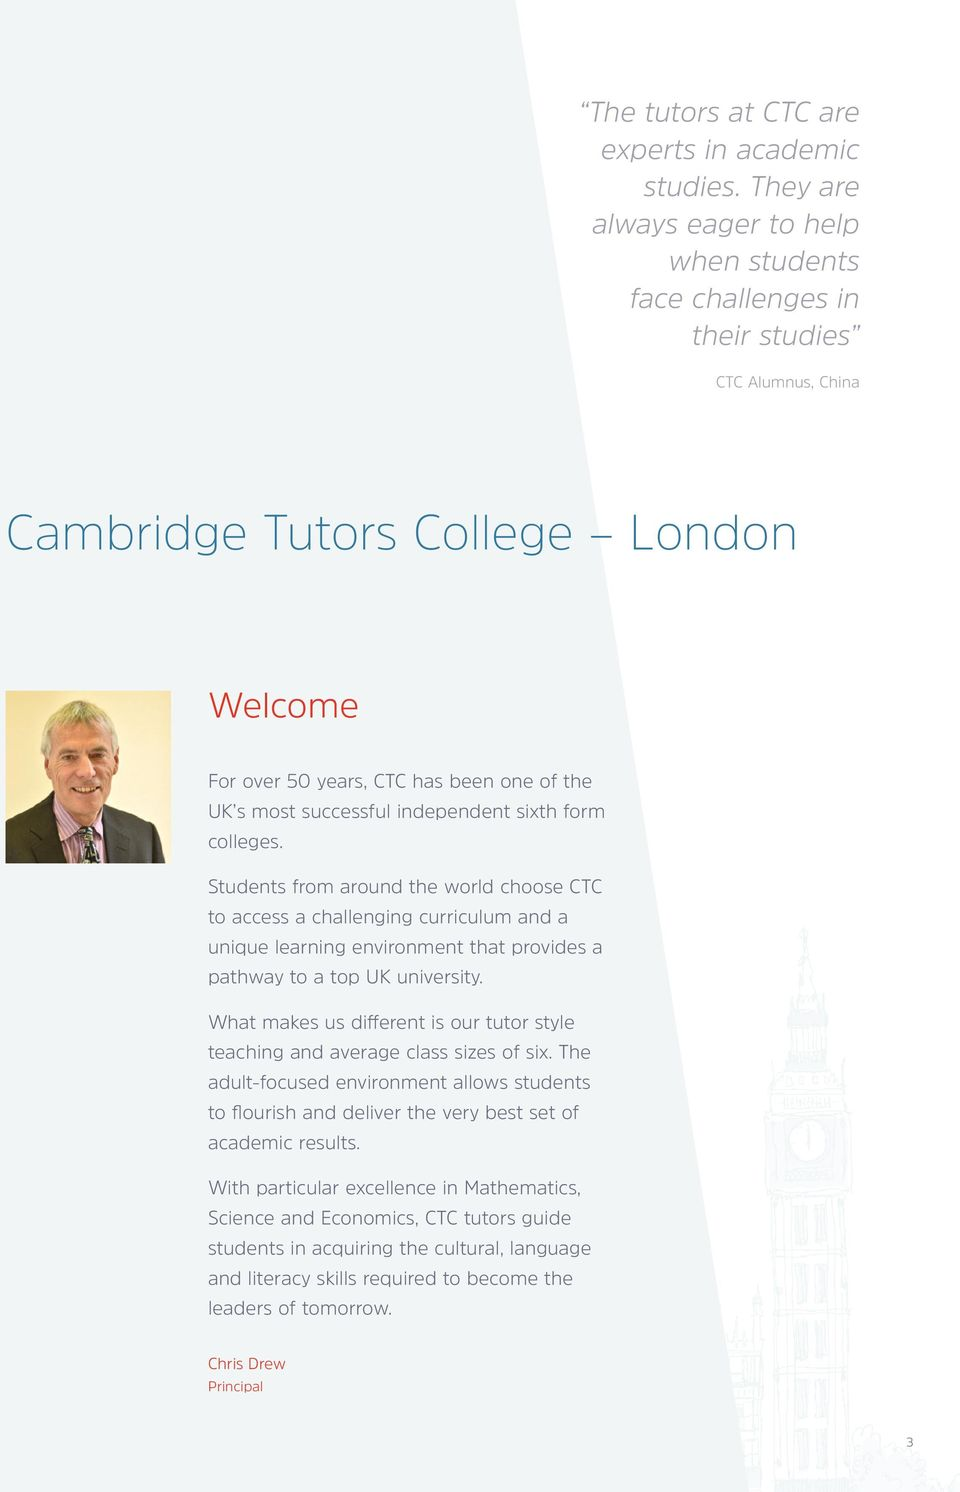 independent sixth form colleges. Students from around the world choose CTC to access a challenging curriculum and a unique learning environment that provides a pathway to a top UK university.